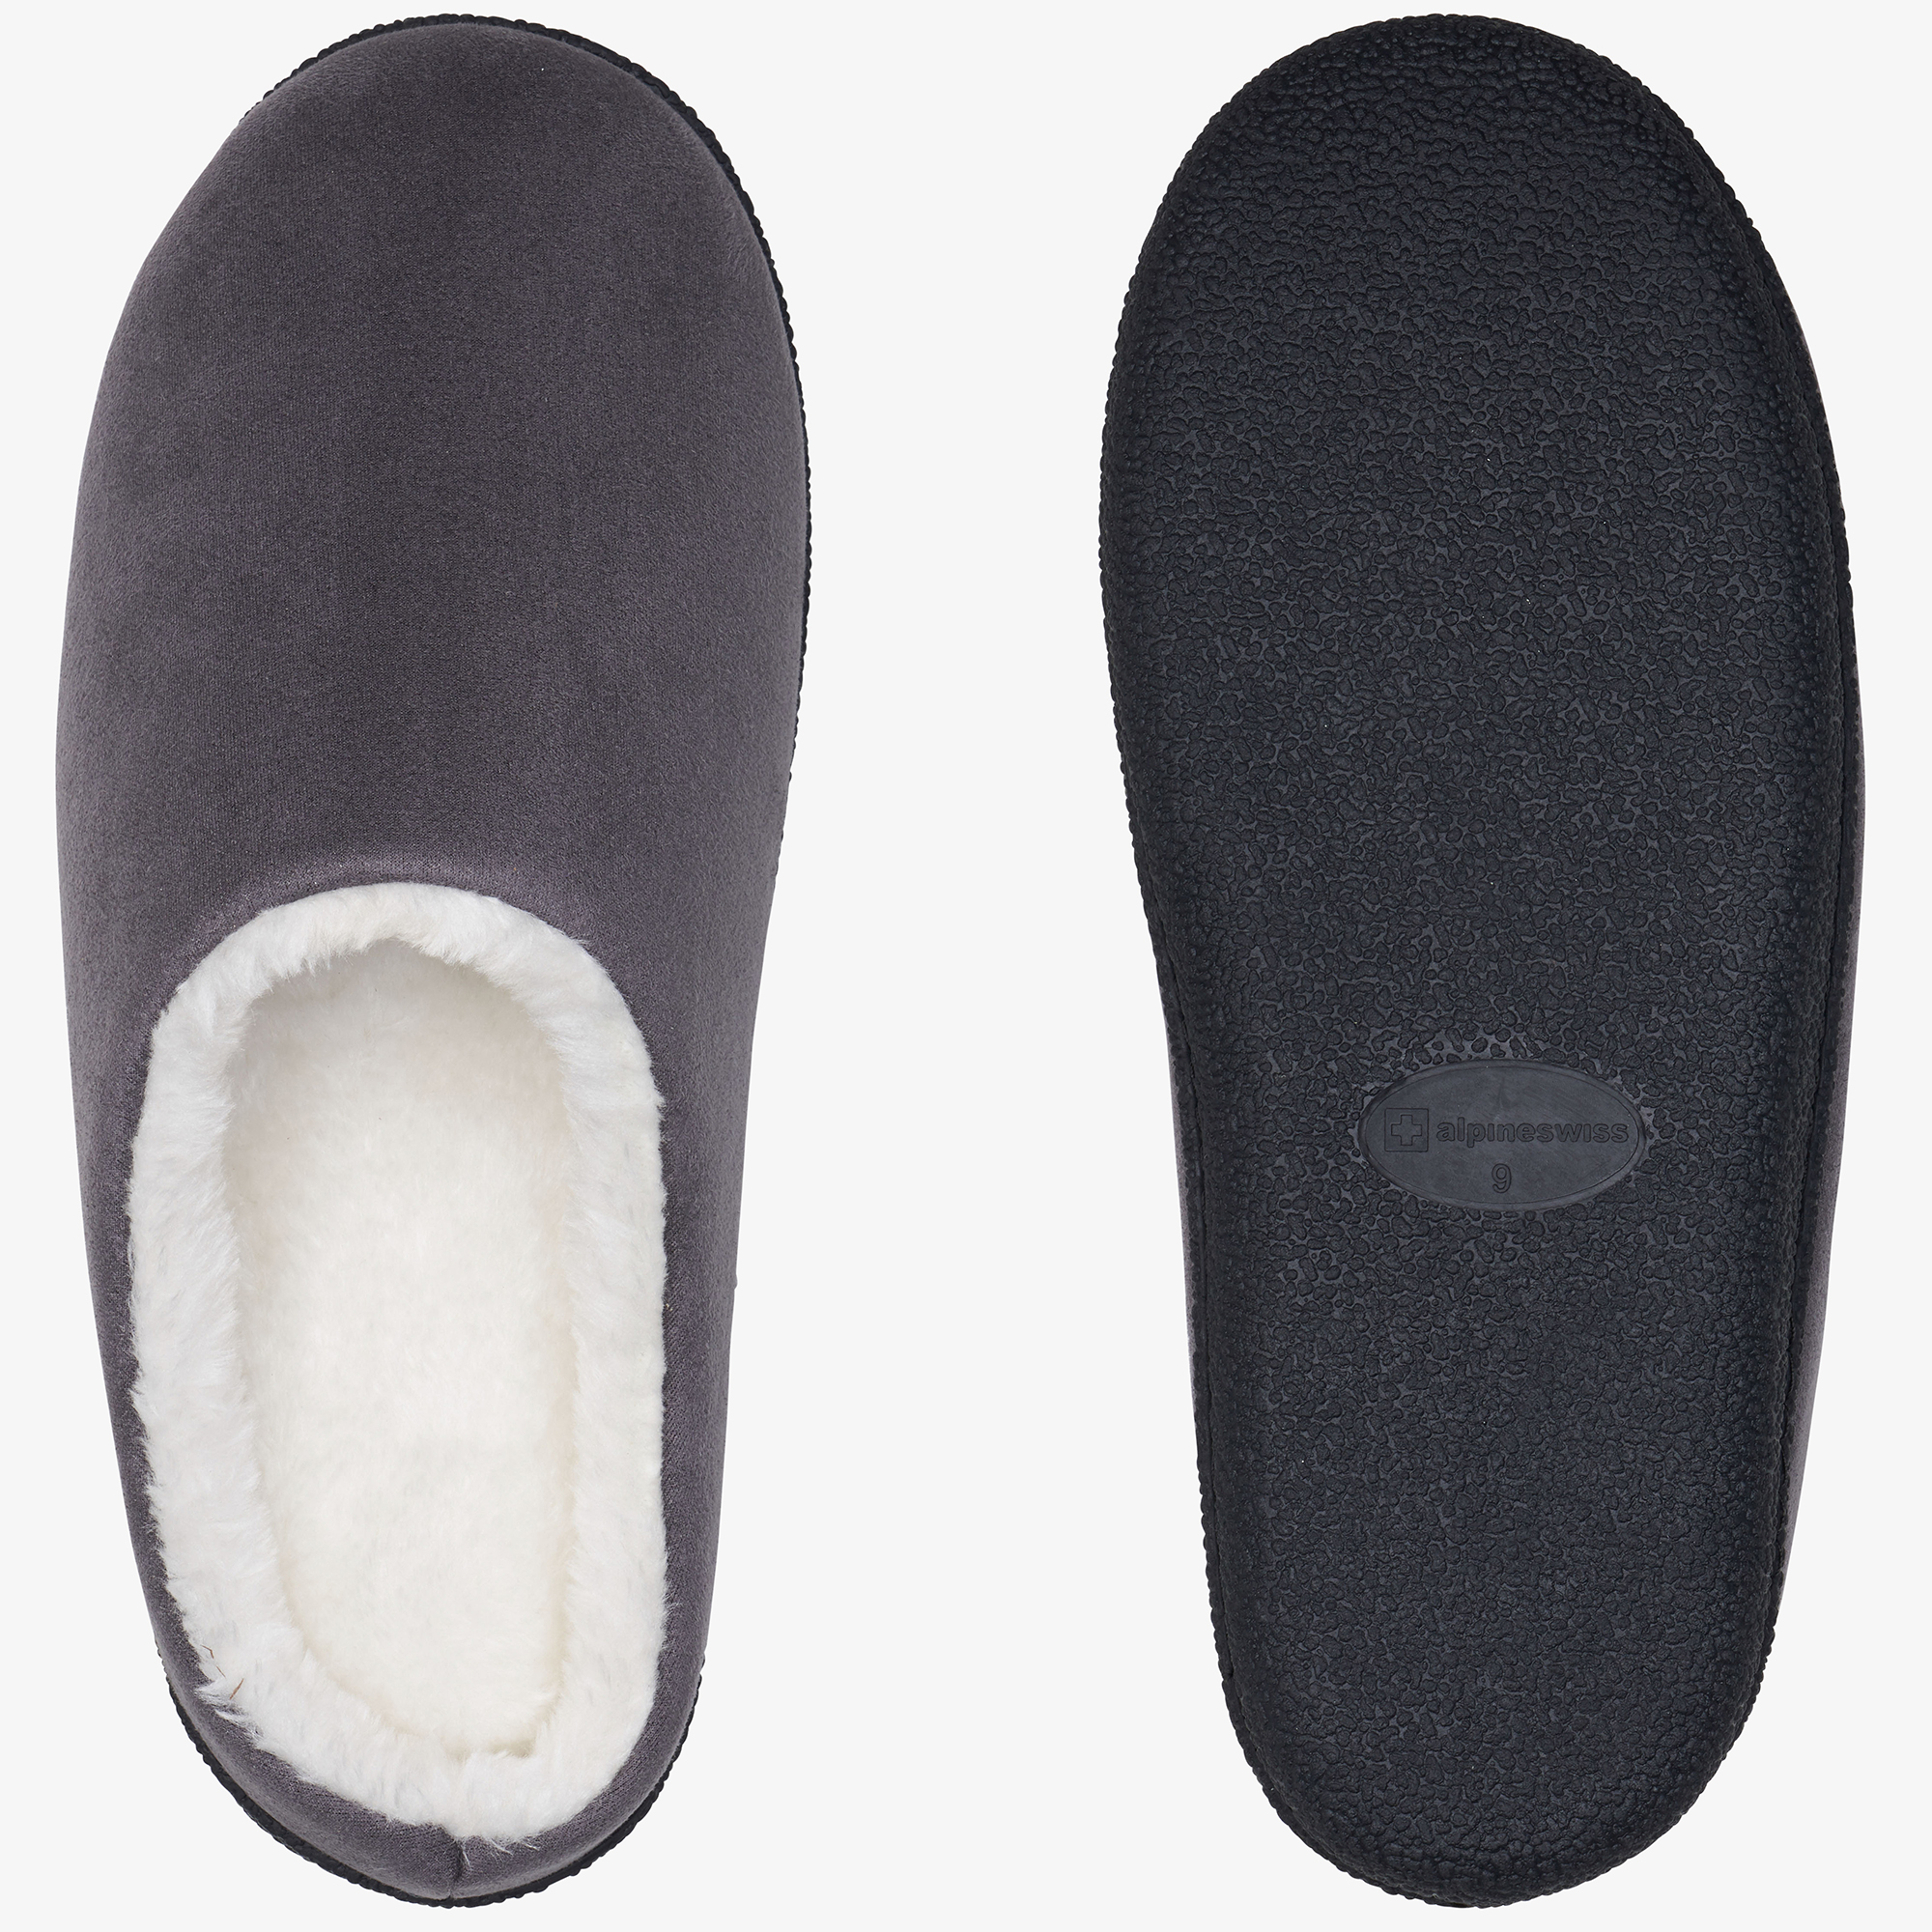 Alpine-Swiss-Mens-Memory-Foam-Clog-Slippers-Indoor-Comfort-Slip-On-House-Shoes thumbnail 28